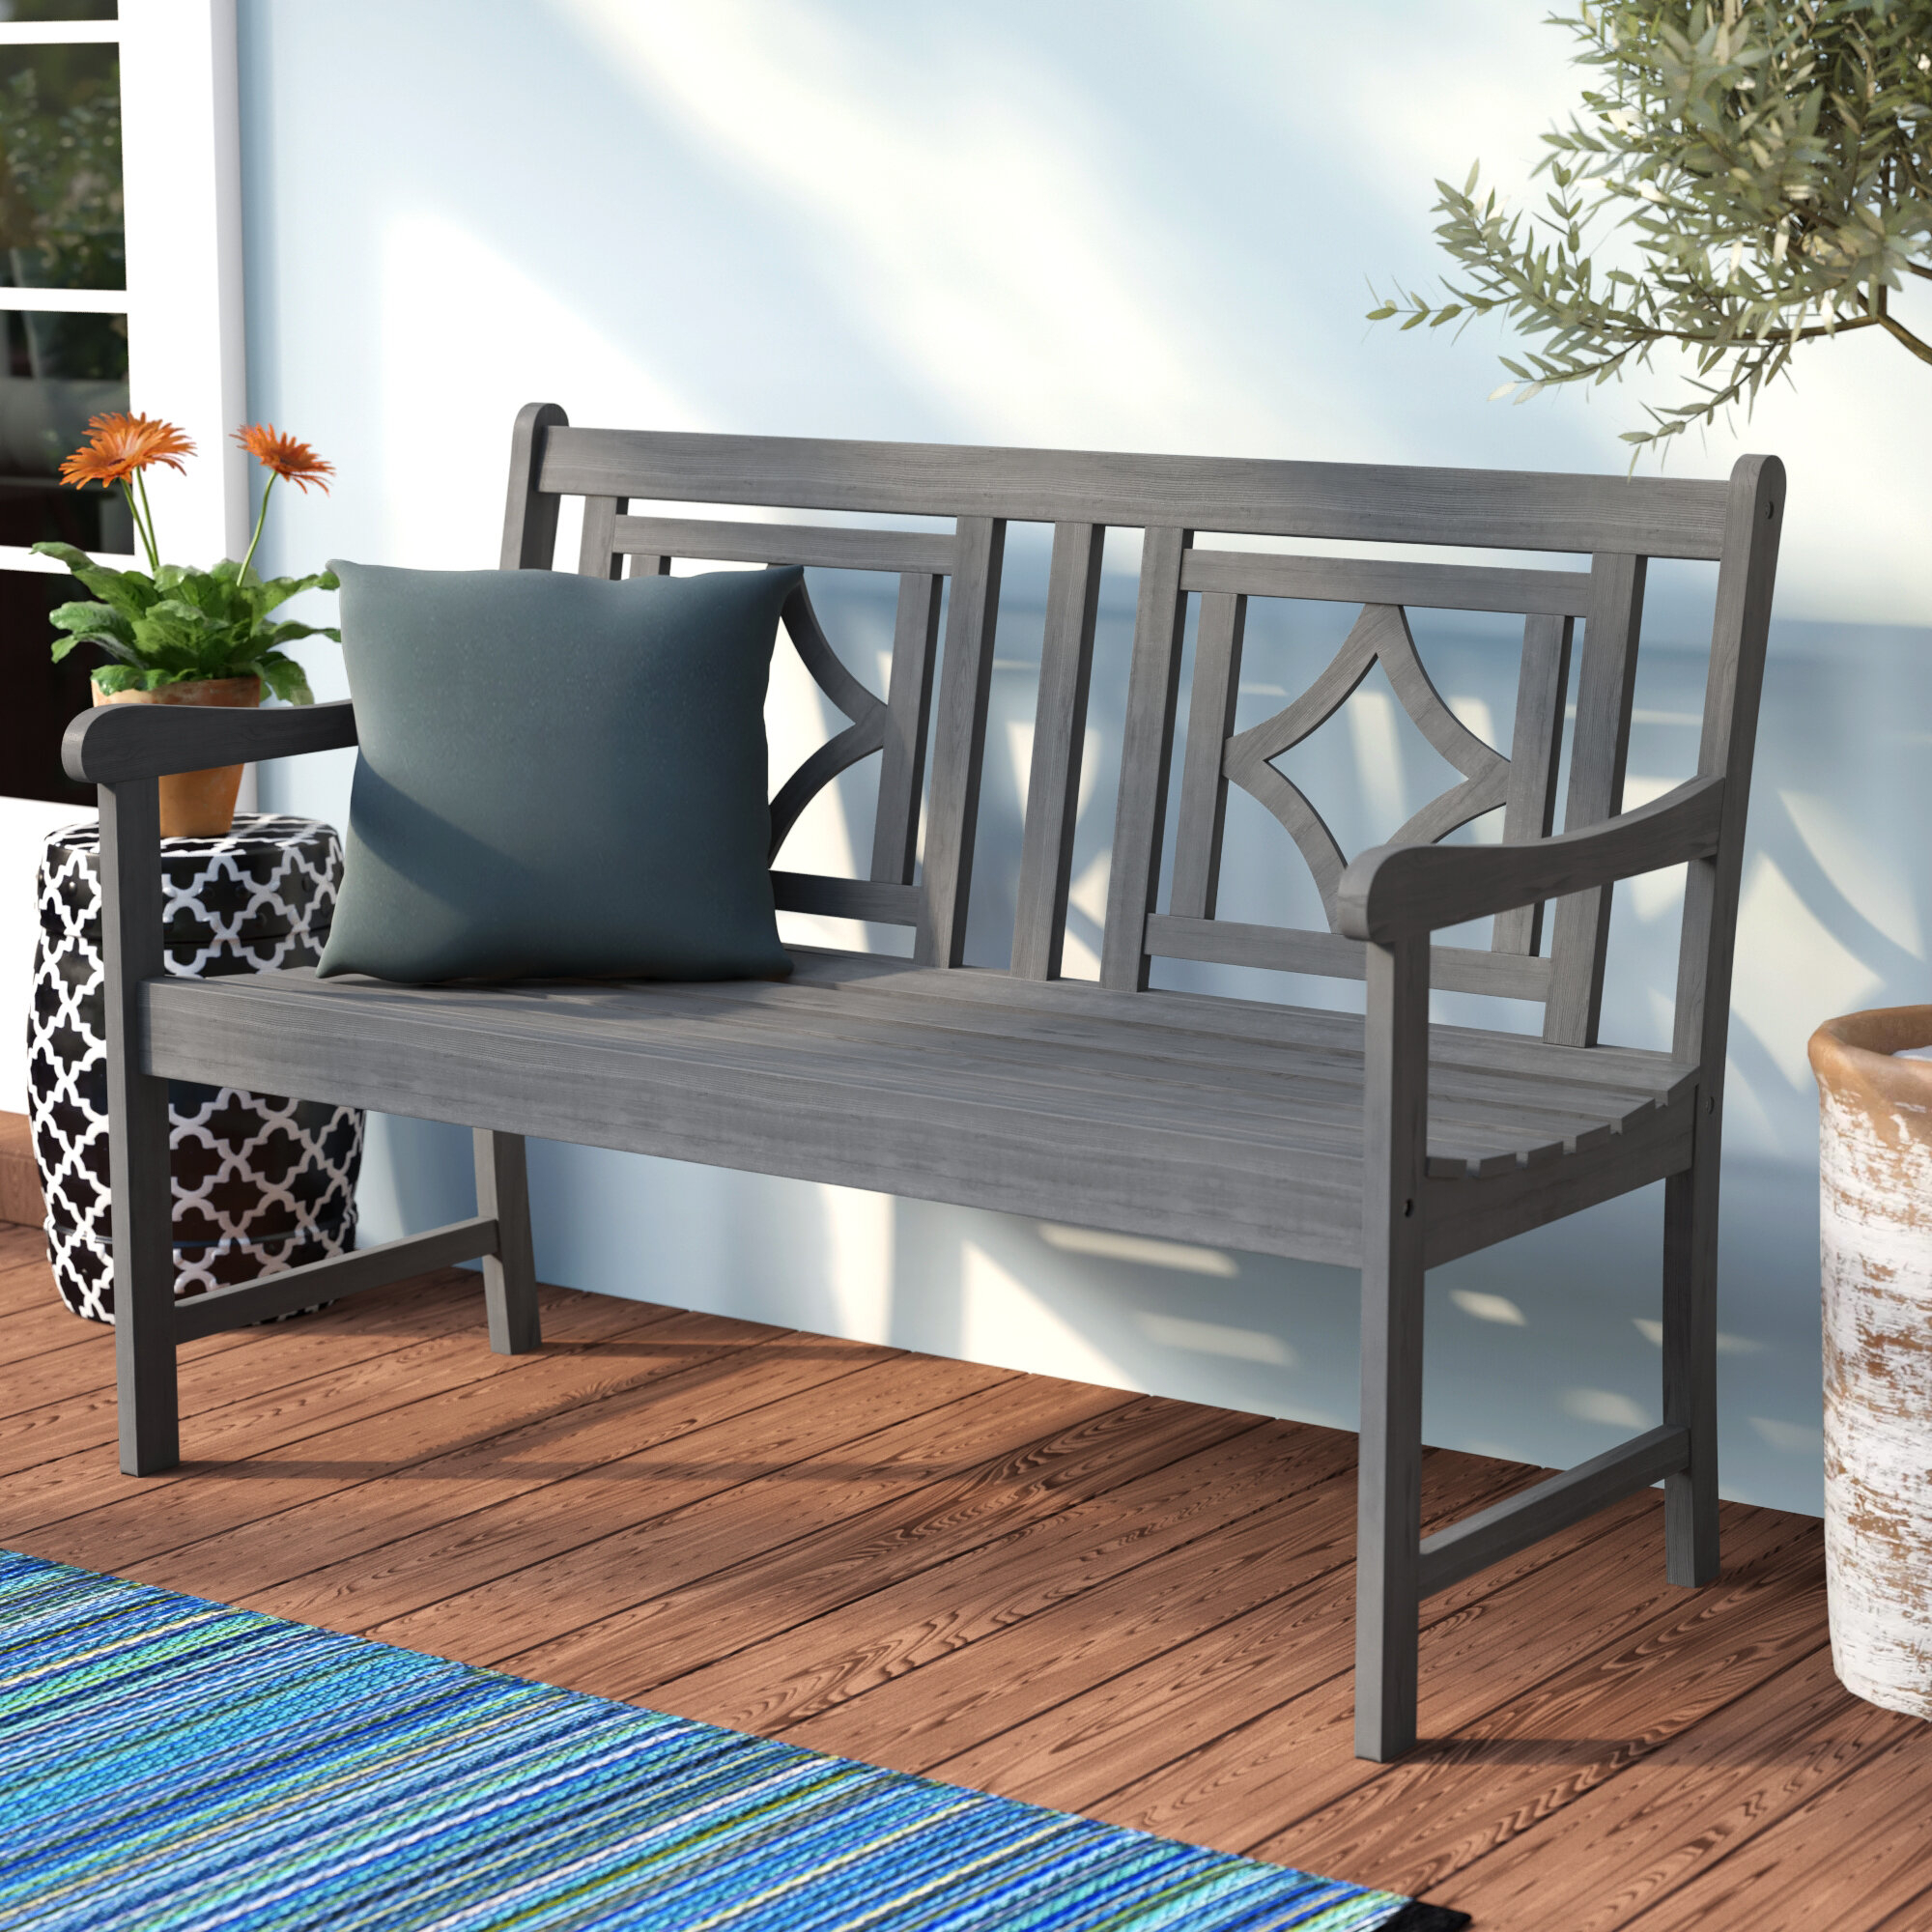 Featured Image of Shelbie Wooden Garden Benches